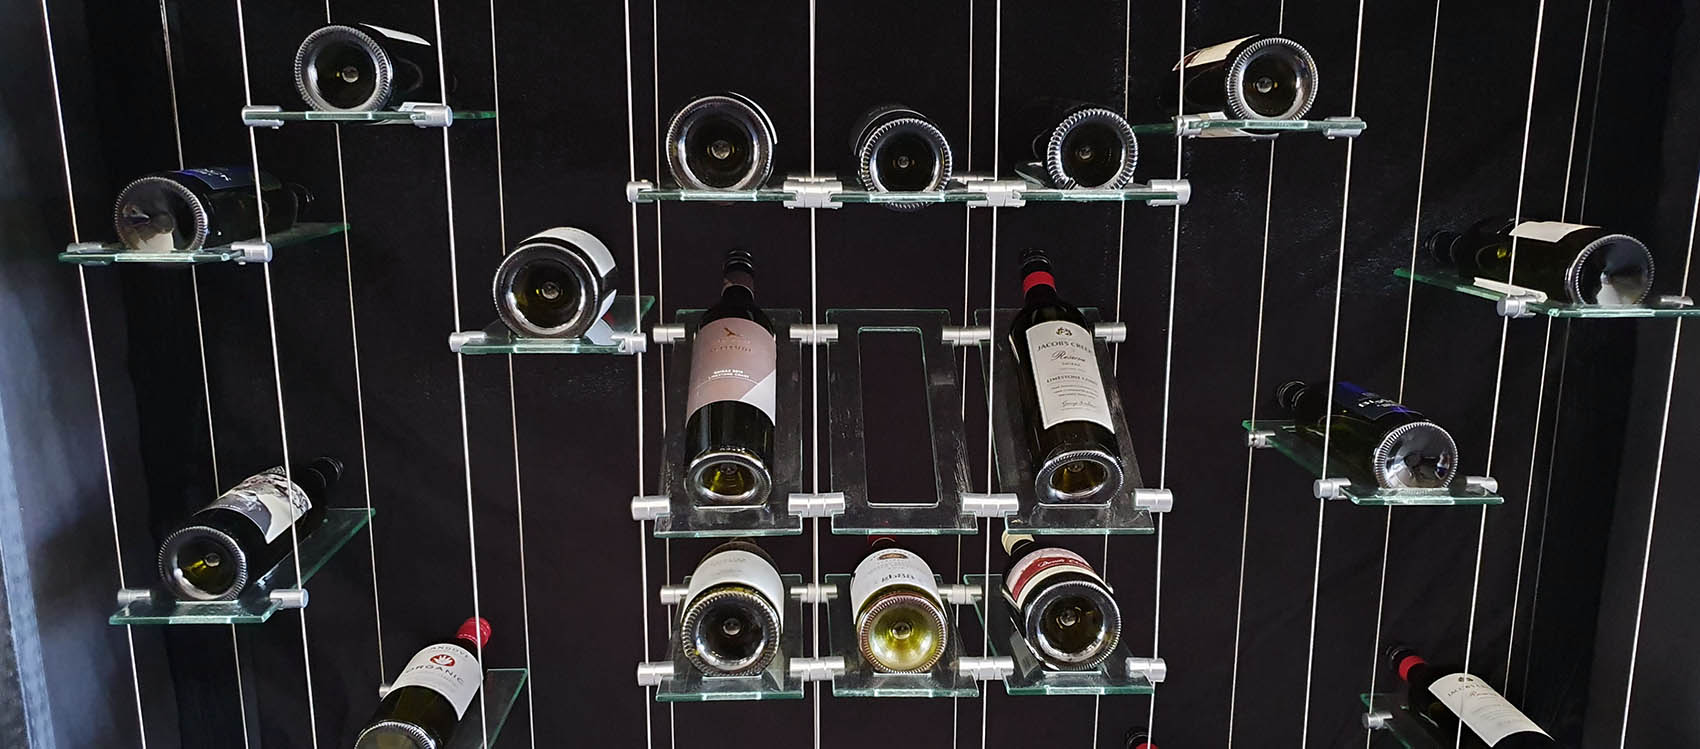 Floating glass wine rack system display with wine bottles filled